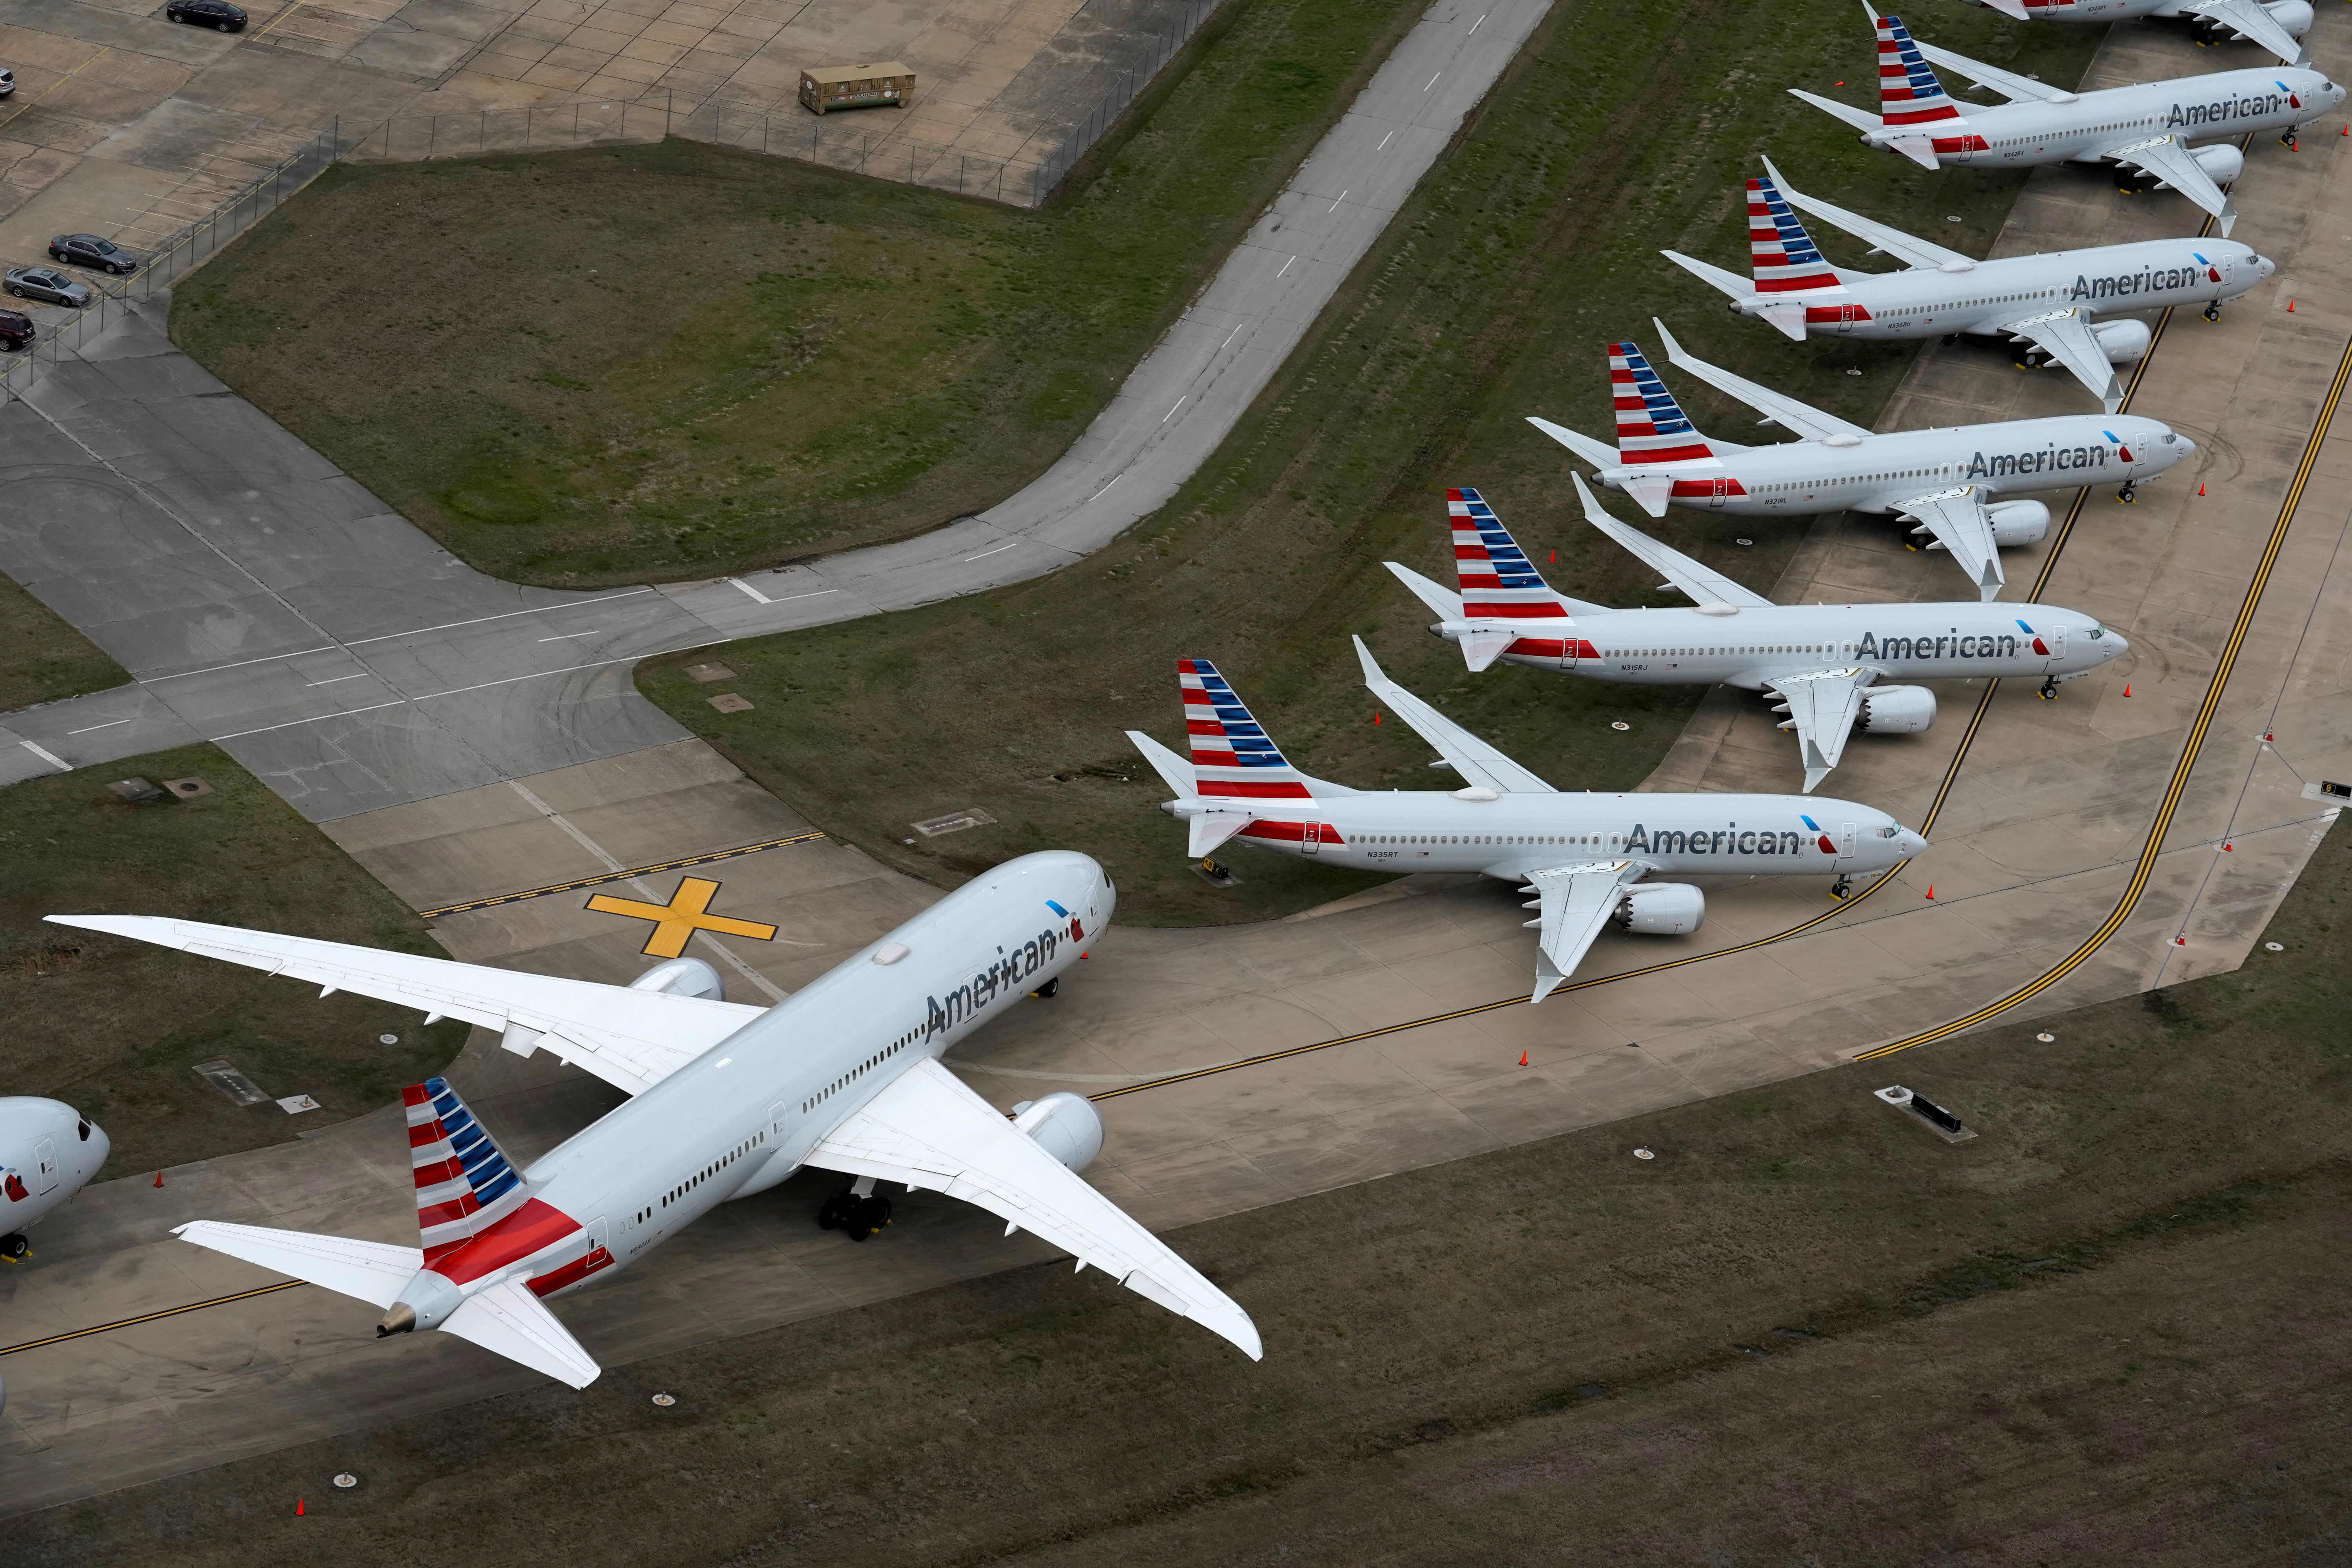 American Airlines cuts summer international flights by 60% as demand suffers